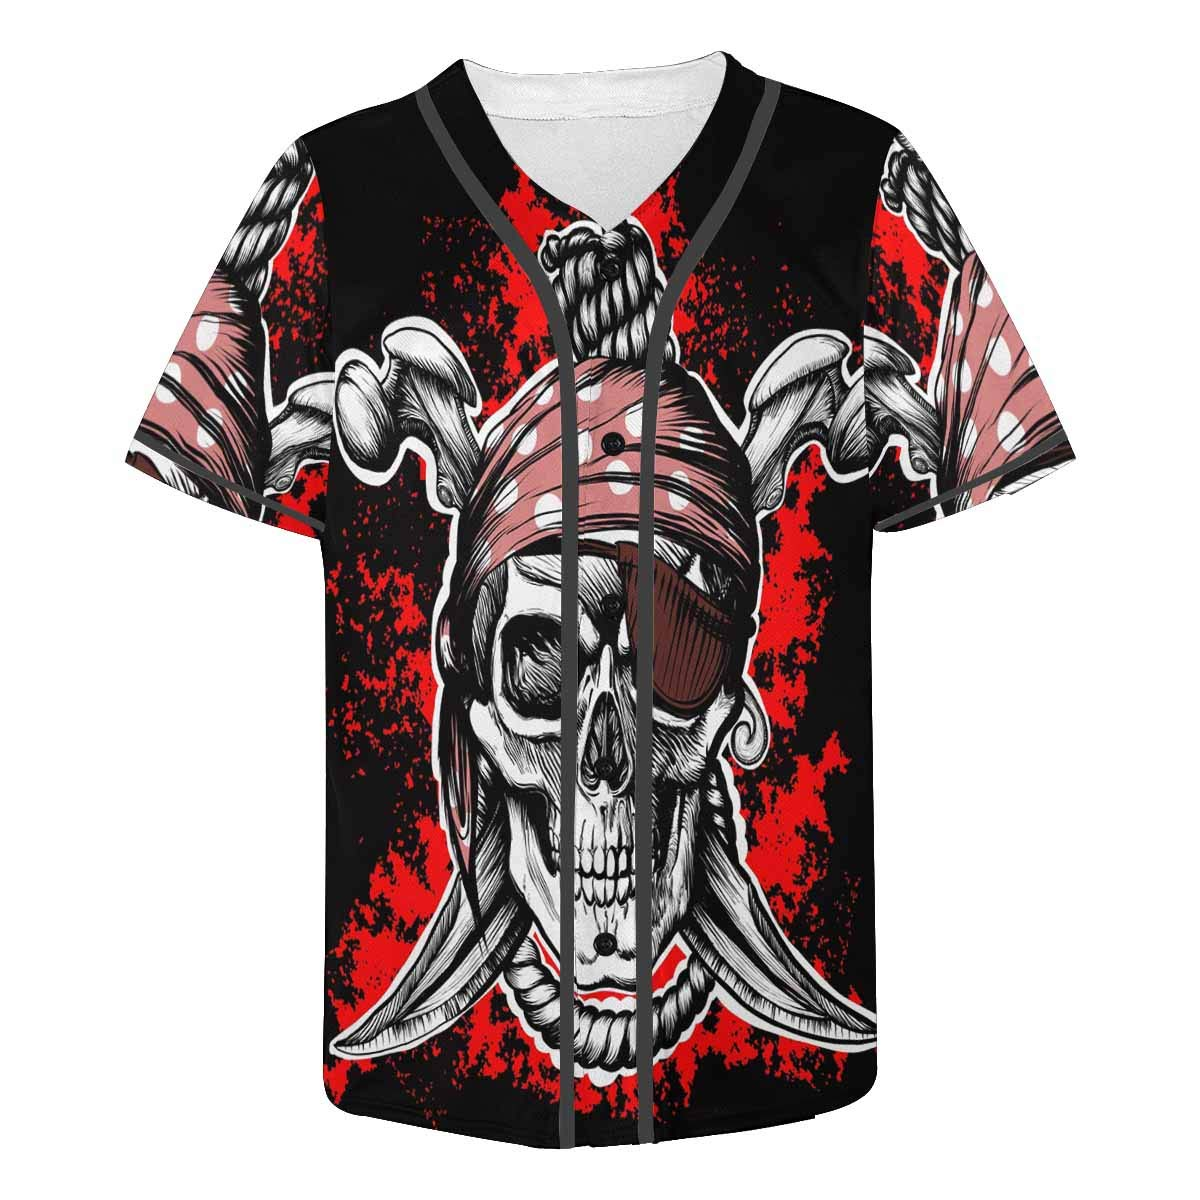 INTERESTPRINT Mens Button Down Baseball Jersey a Pirate Symbol with Crossed Daggers